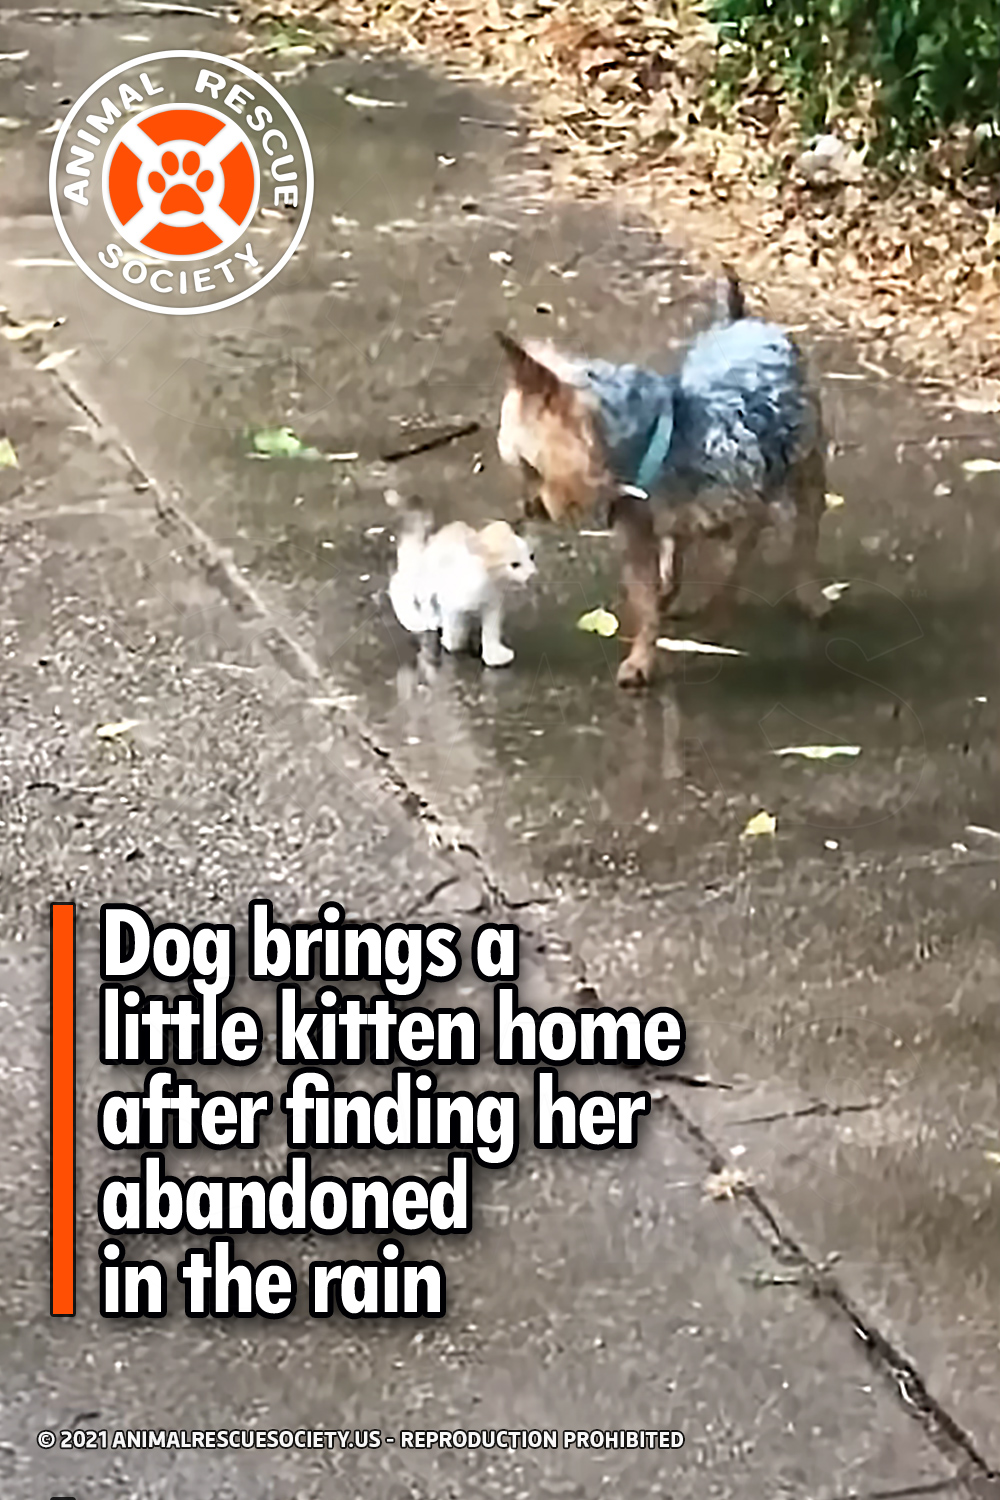 Dog brings a little kitten home after finding her abandoned in the rain